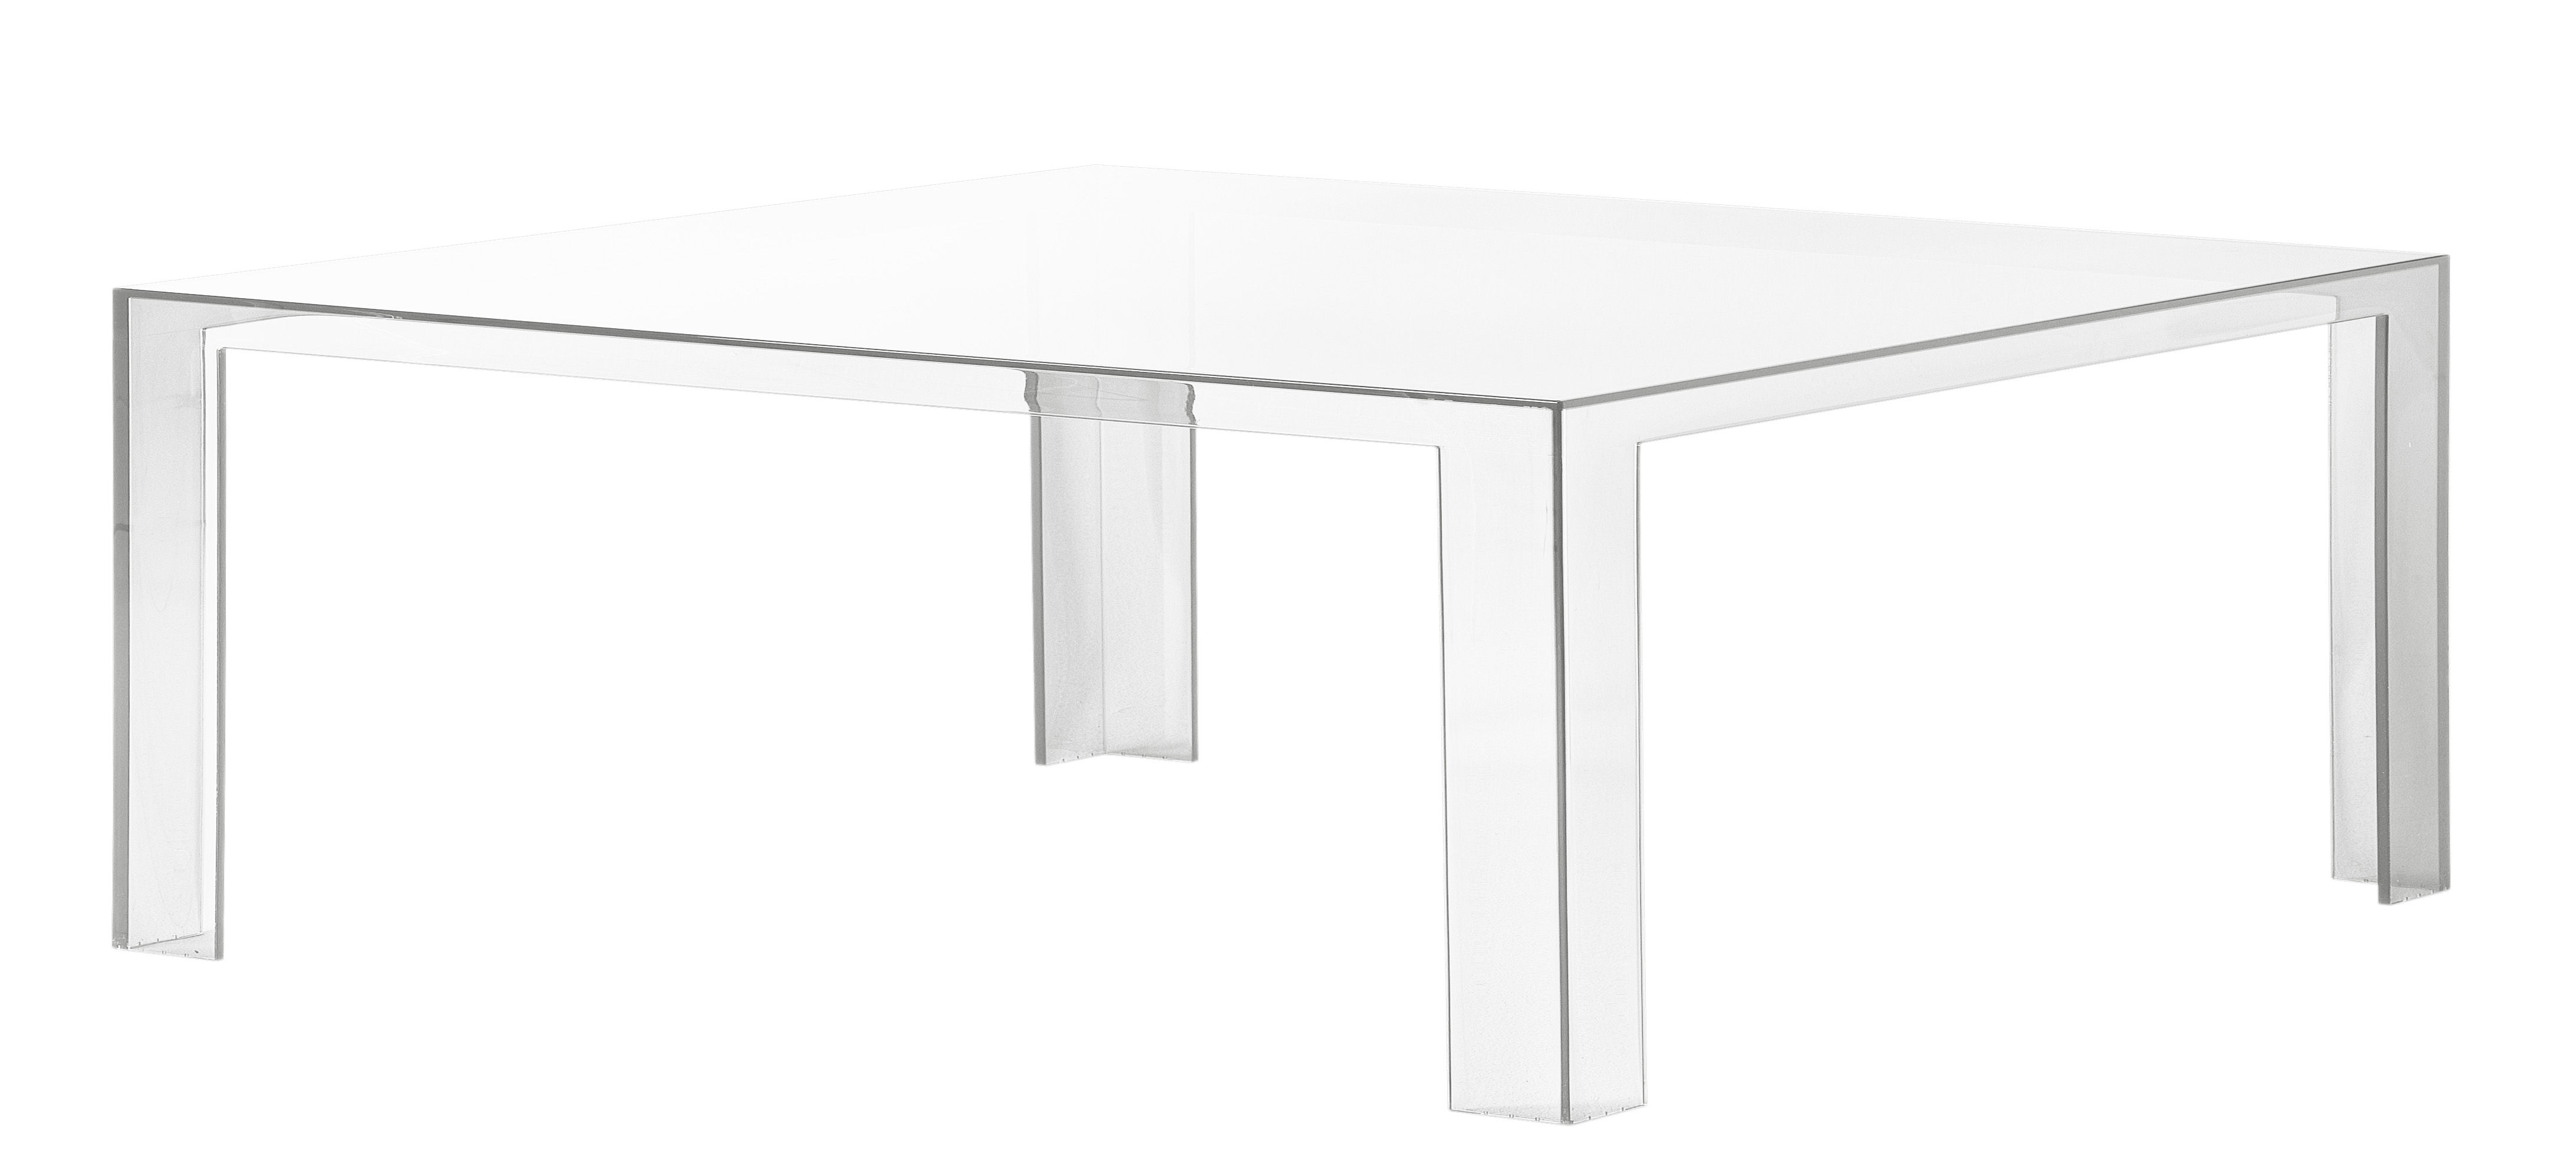 Furniture - Invisible Low Coffee table - H 31 cm by Kartell - Crystal - PMMA